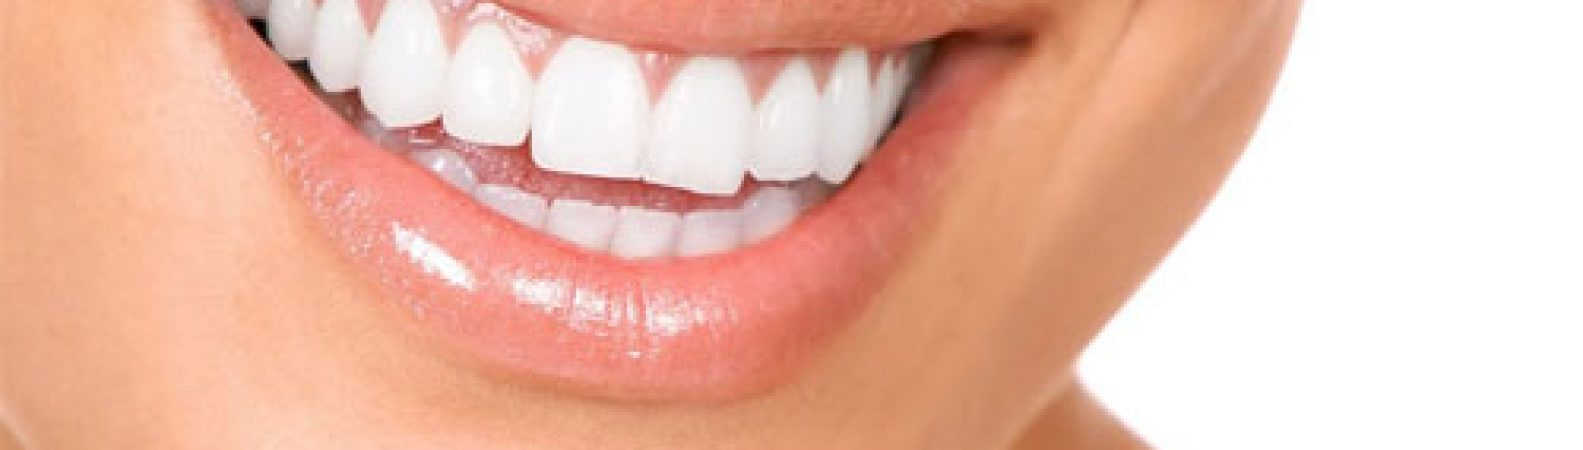 Can Dental Bonding Rebuild Your Teeth?